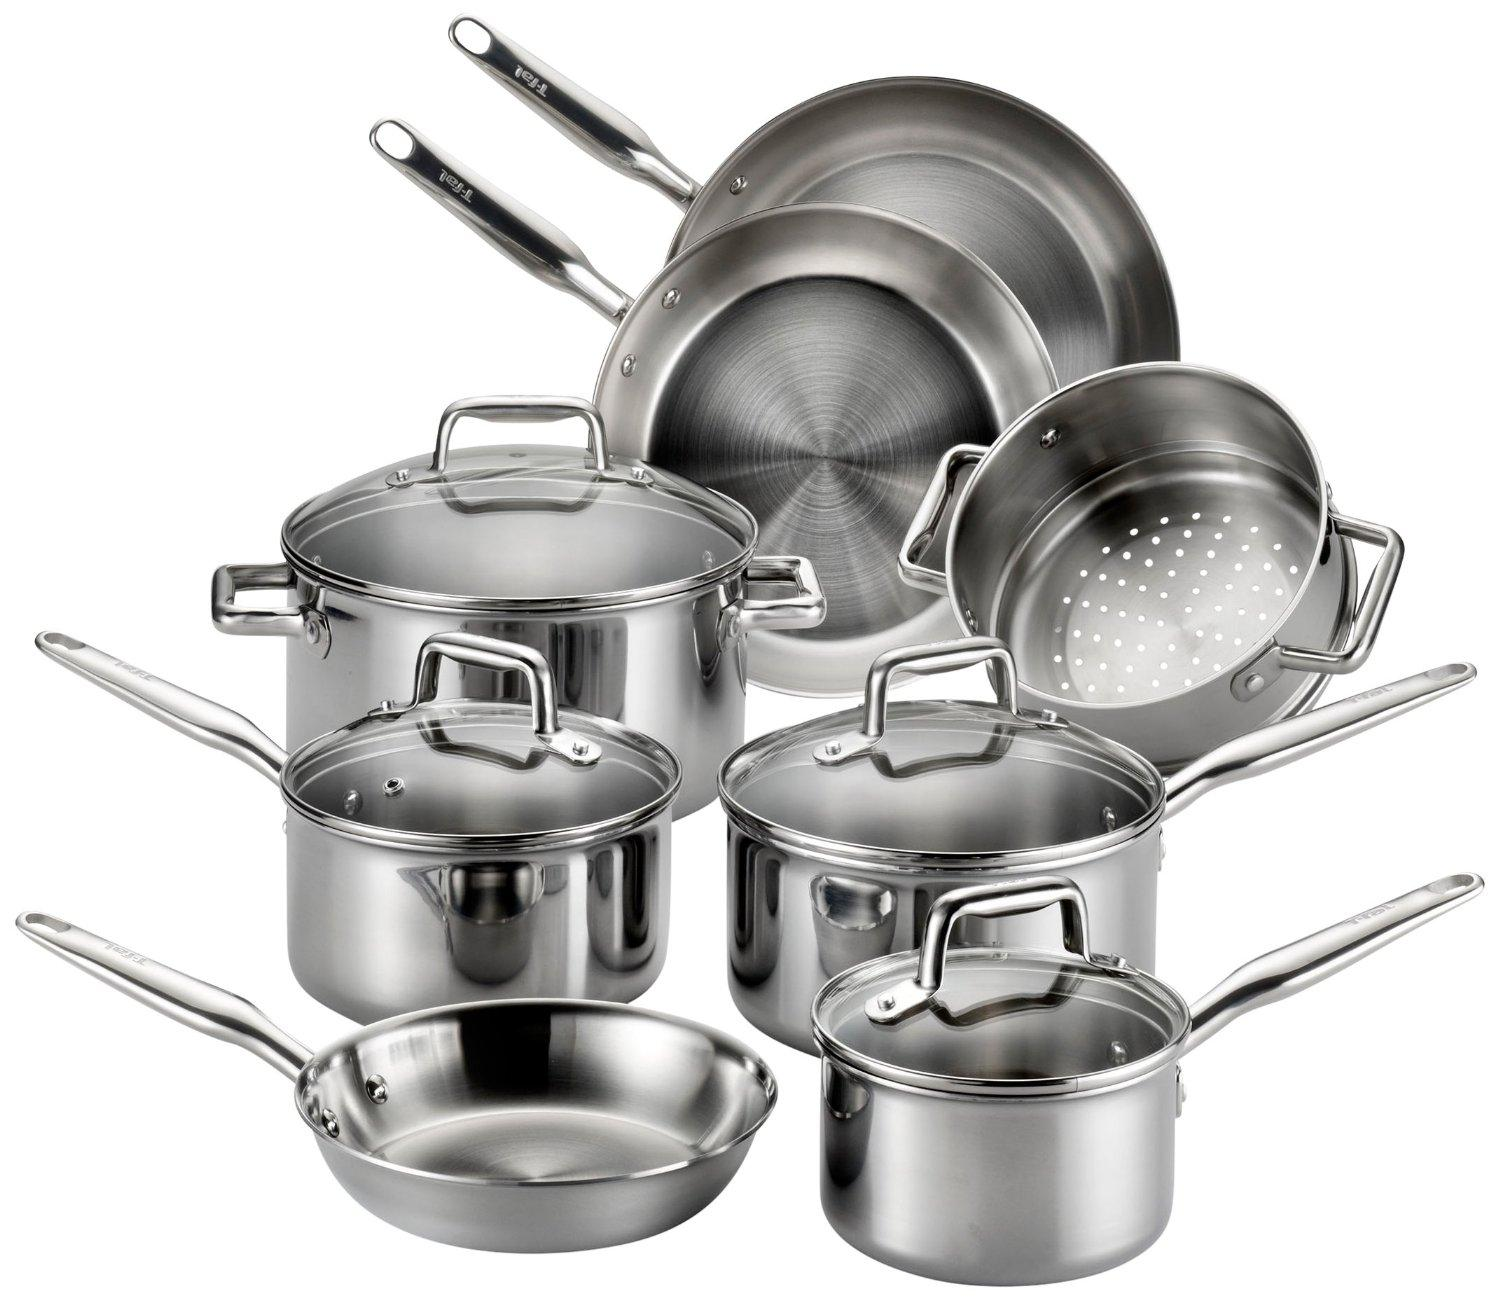 Lowest price! $106.65( reg. $349.99) T-fal Tri-Ply Stainless Steel Multiple Layer Cookware Set, 12-Piece